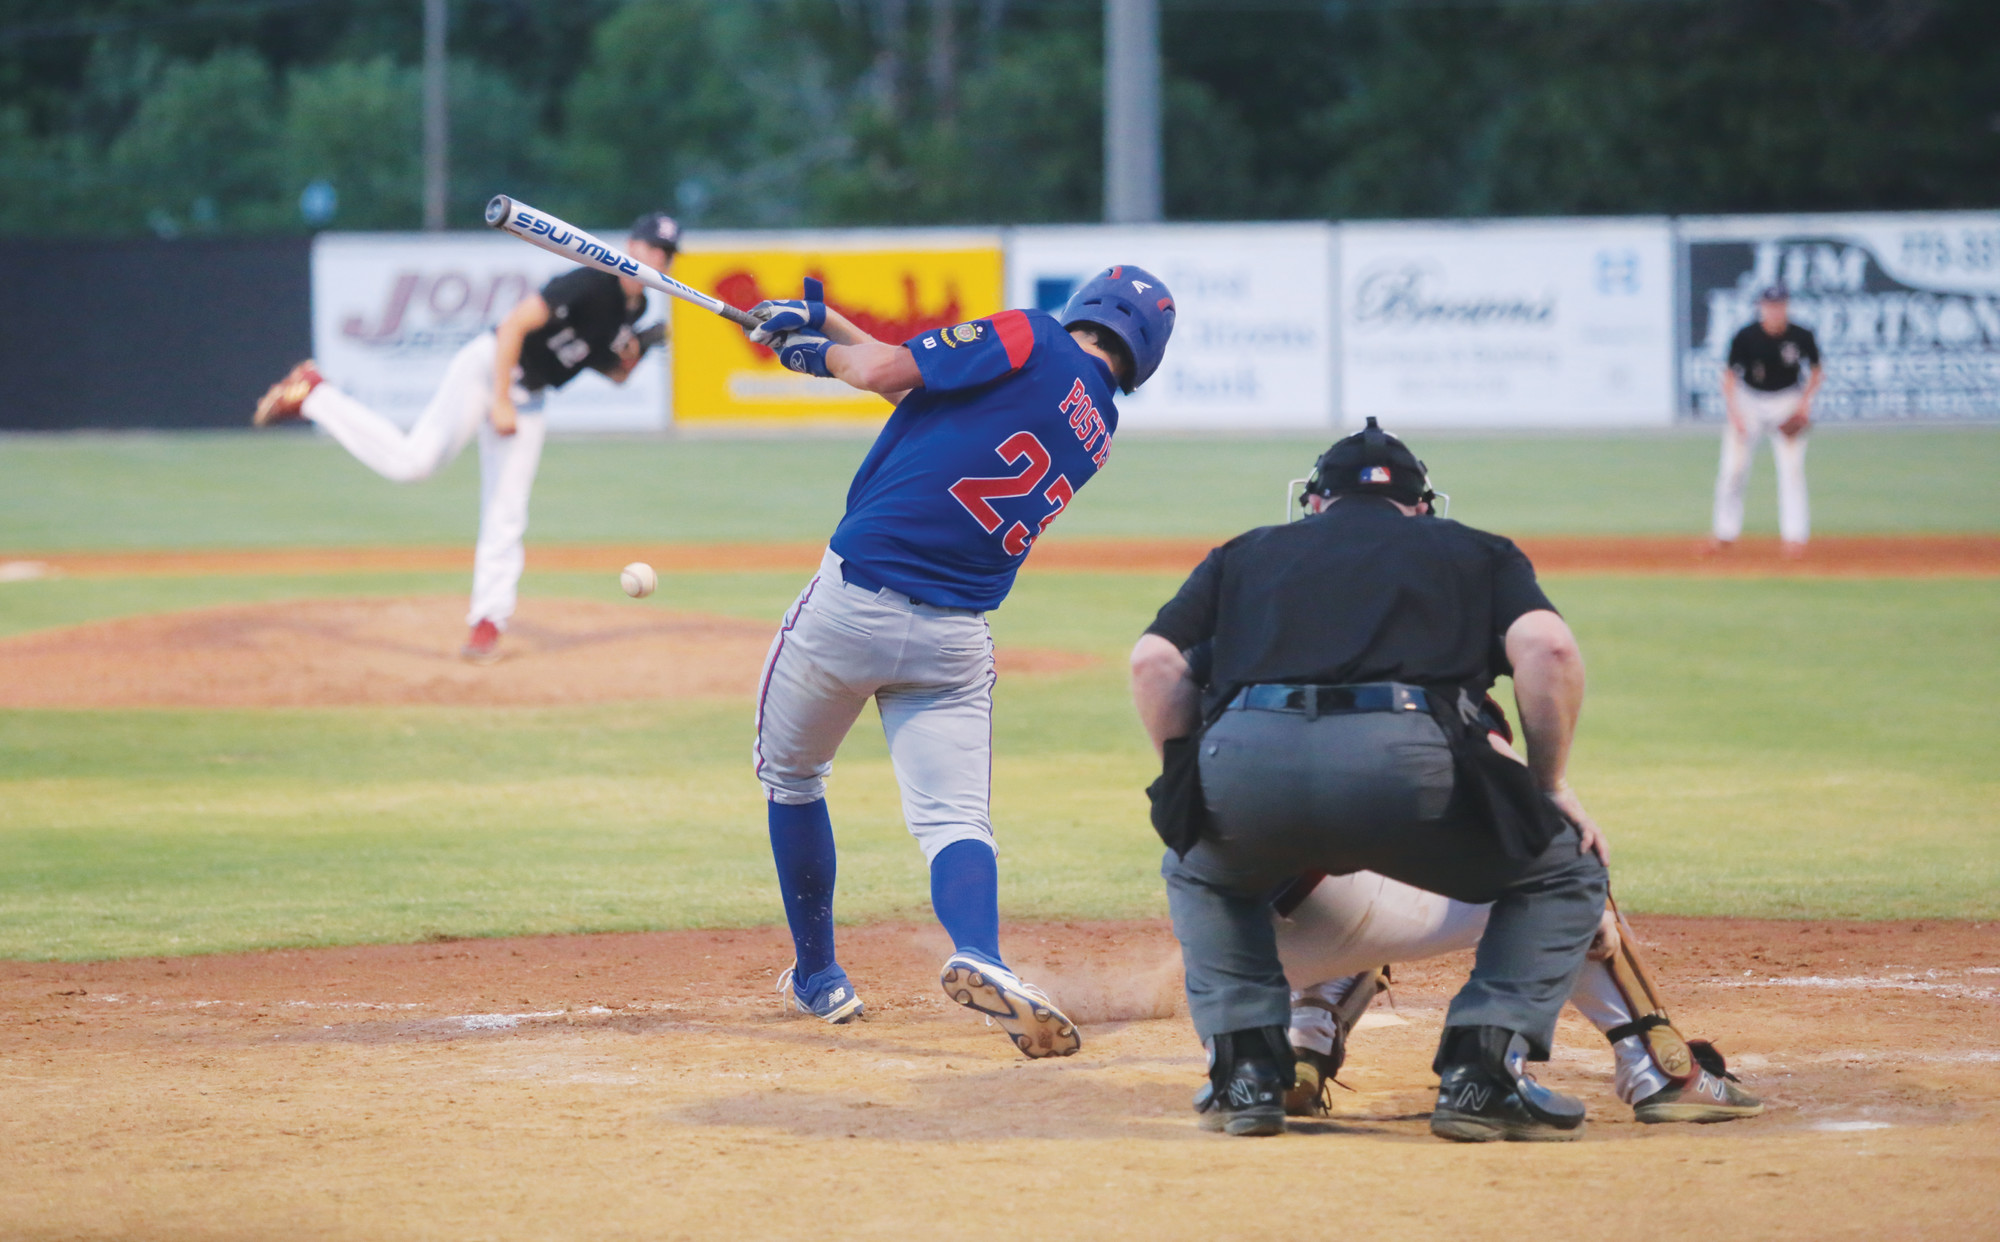 Sumter's Andrew Twitty makes contact during uring the P-15's 10-0 6-inning victory over Hampton Post 108 on Friday at Riley Park.